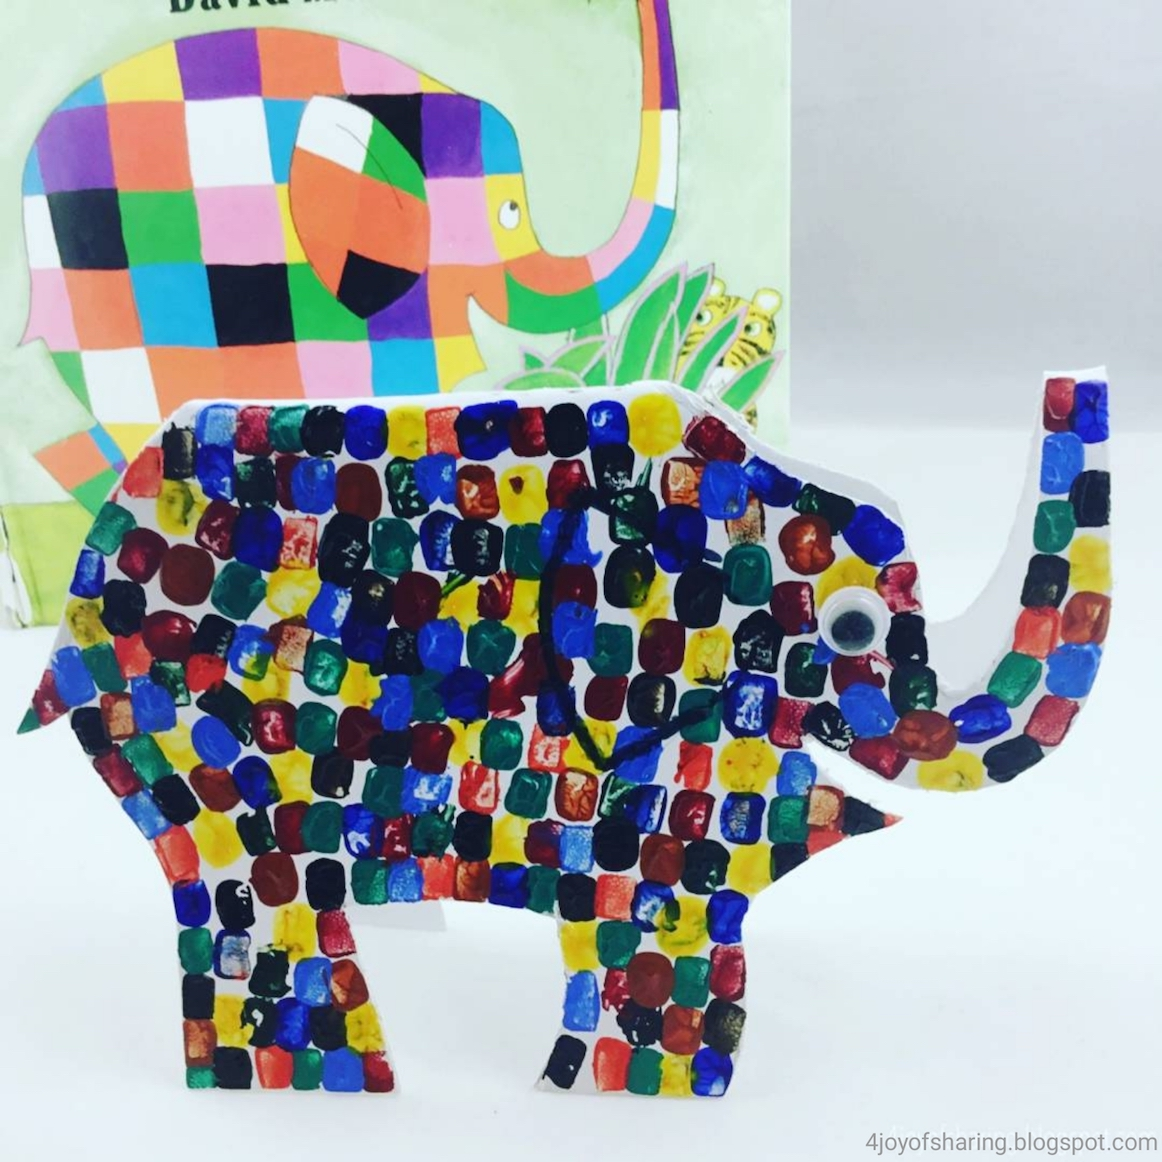 Elephant craft, animal craft, kids craft, Pointillism art, toddler craft, preschool craft, school craft, art and craft, art, daycare craft, toddler fun, easy craft, chopstick craft, kids blogging network, kbn, kbnmoms